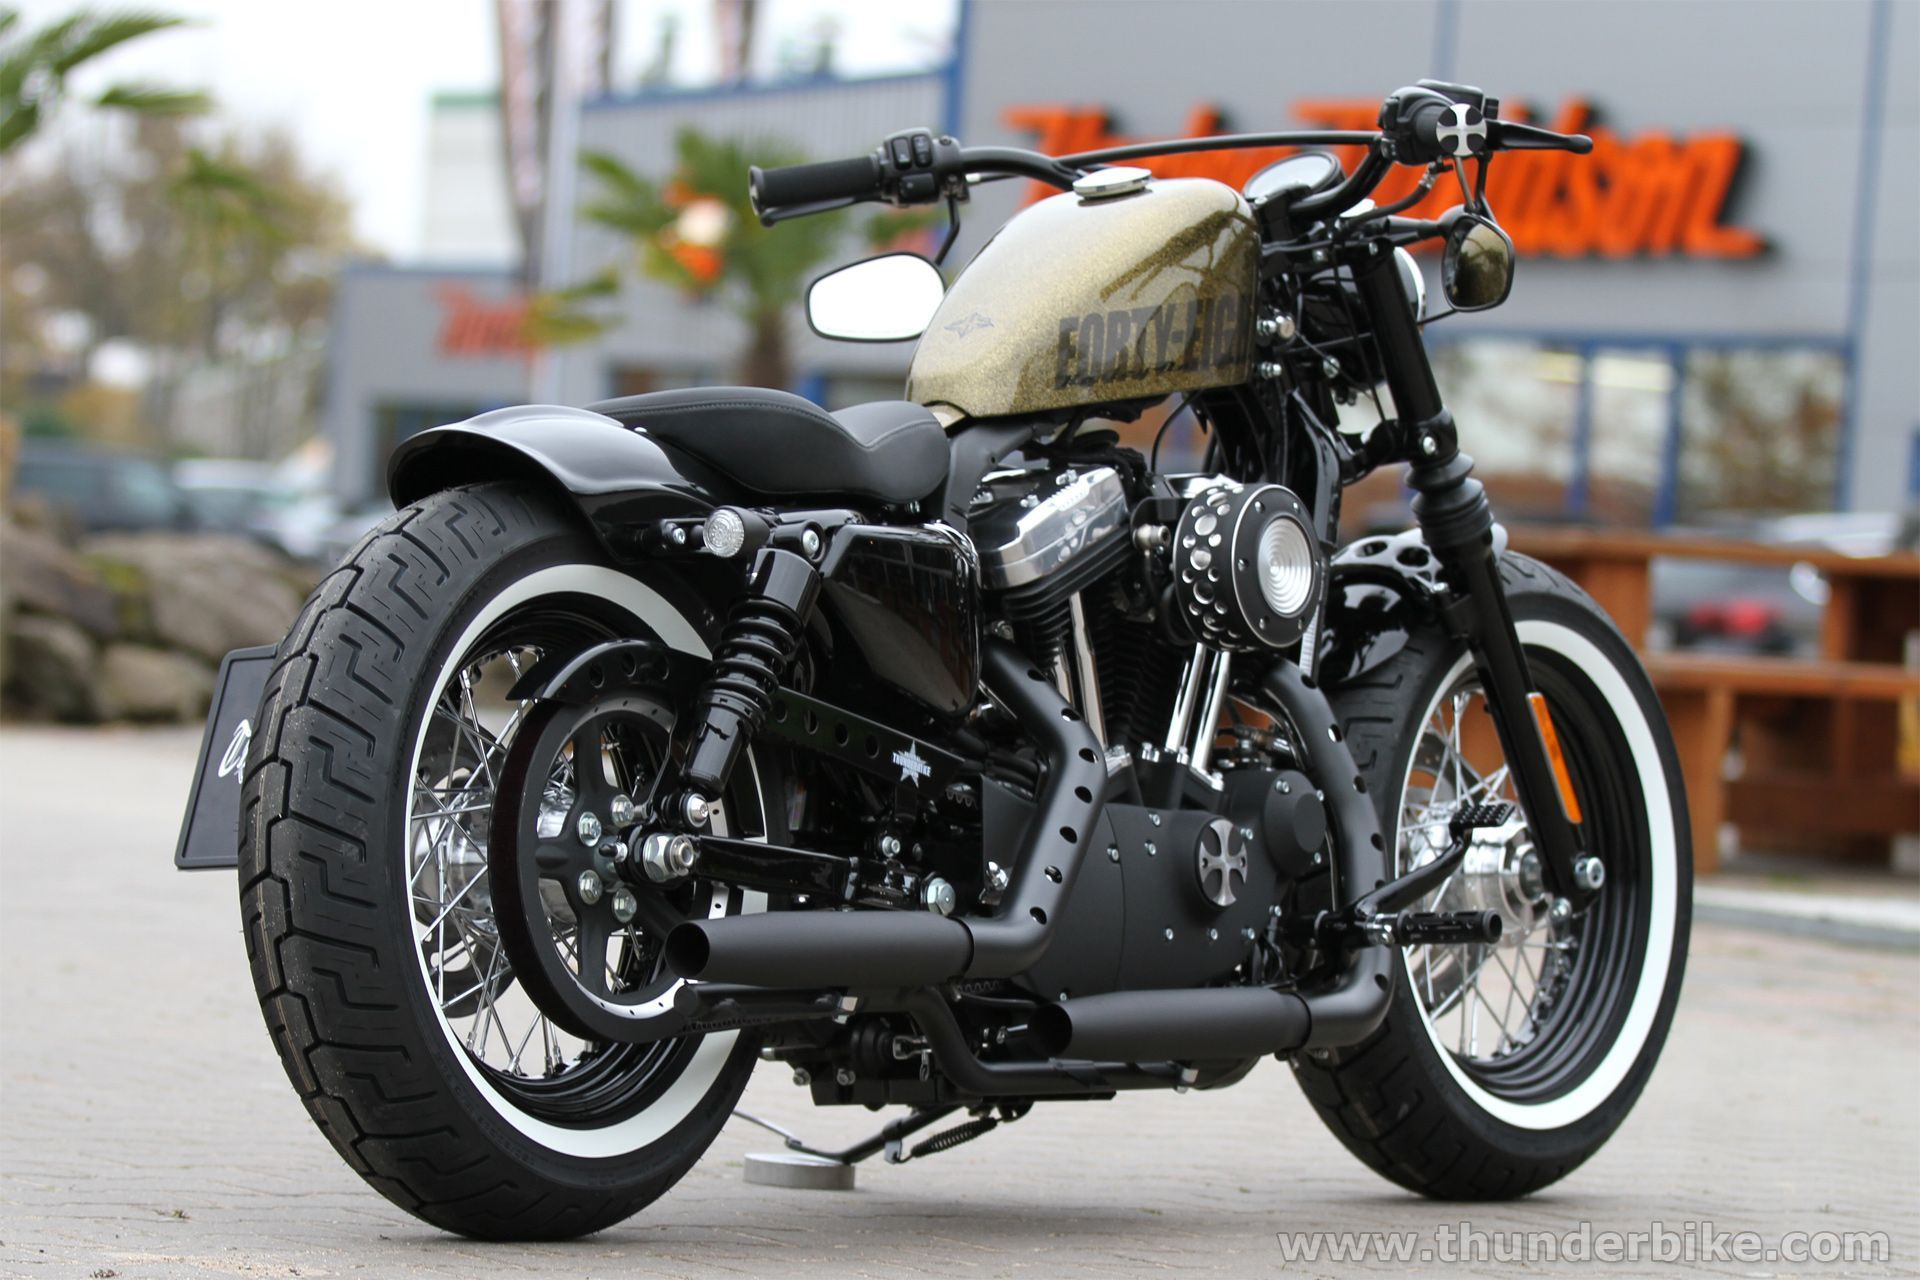 This Harley Davidson Sportster Forty Eight Is Equipped With Our Rear Fender Wiring Harness Latest Xl Parts Like New Fueltank Relocation Grand Classic Filter Kit And Many